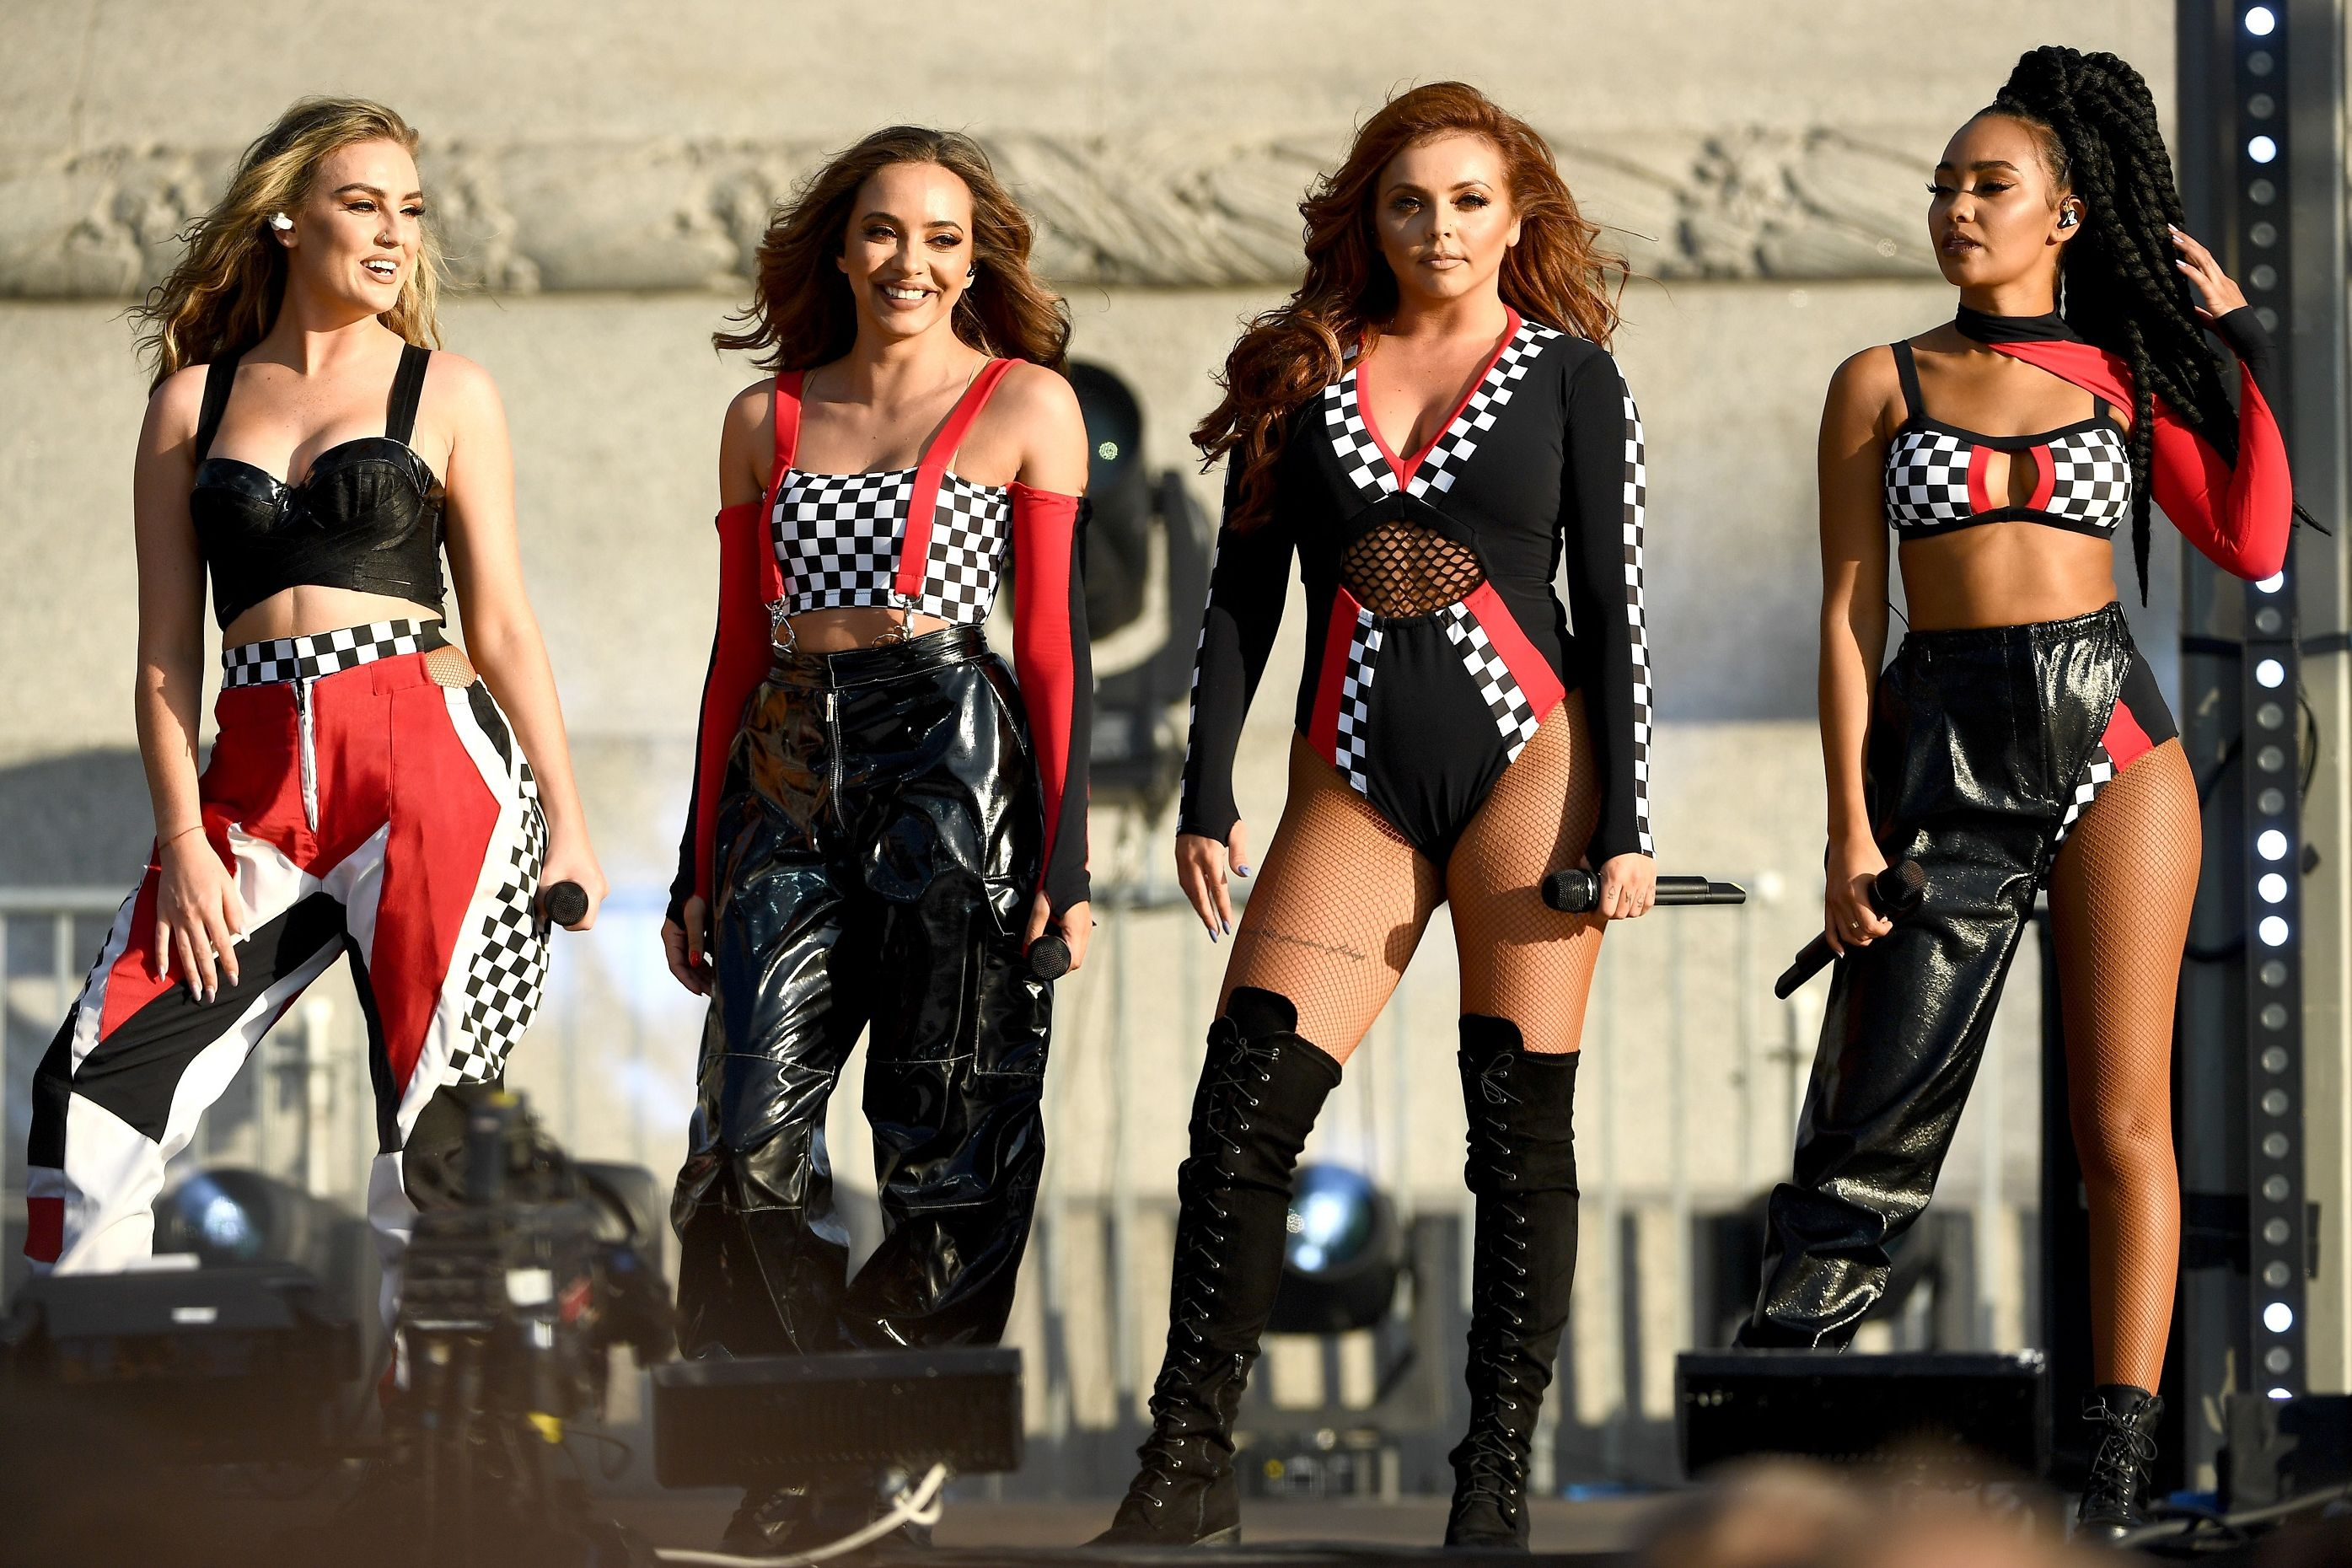 Little Mix perform at the F1 Live in London event